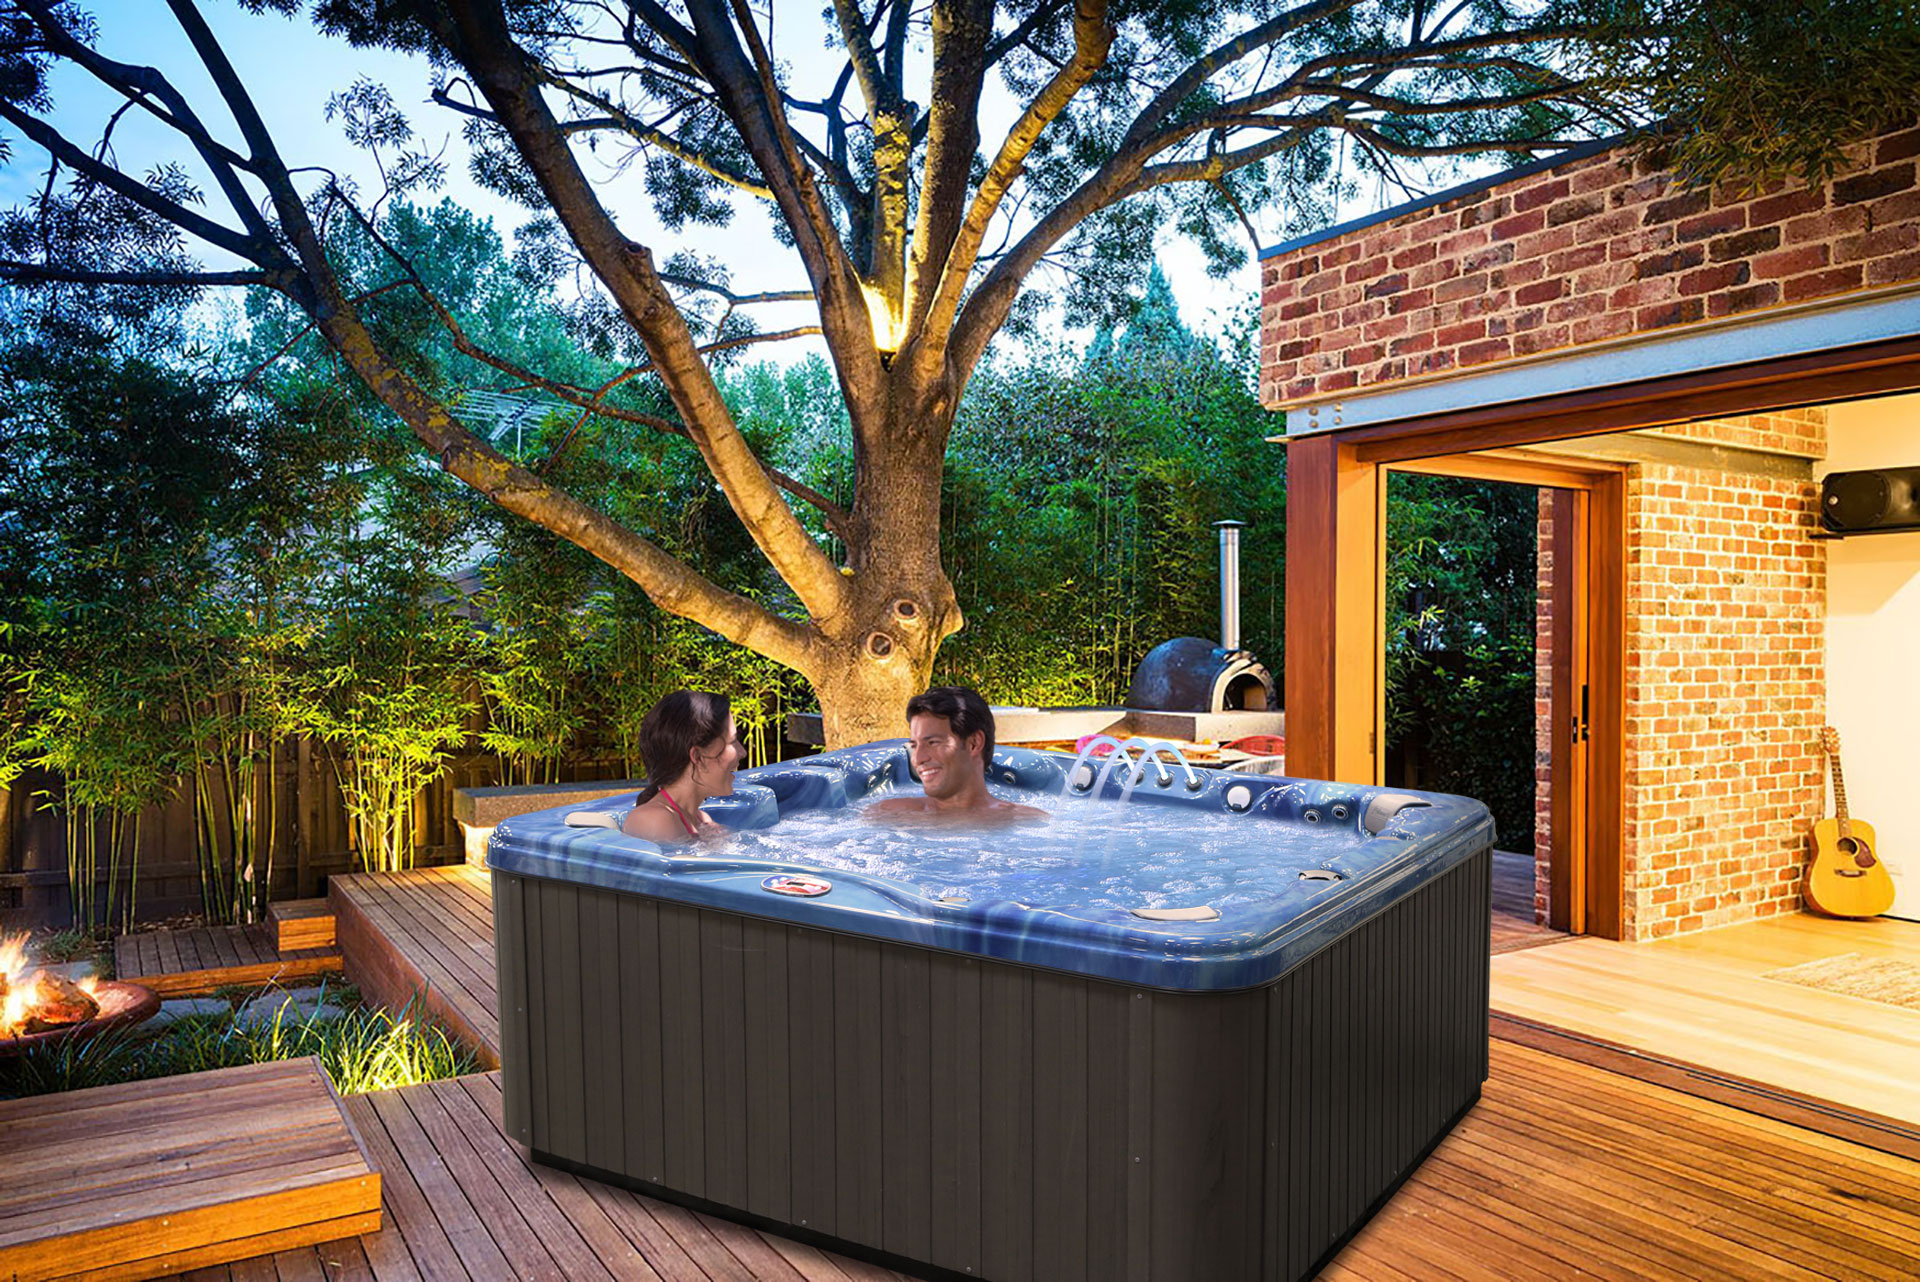 Finding Qualified Spa Service